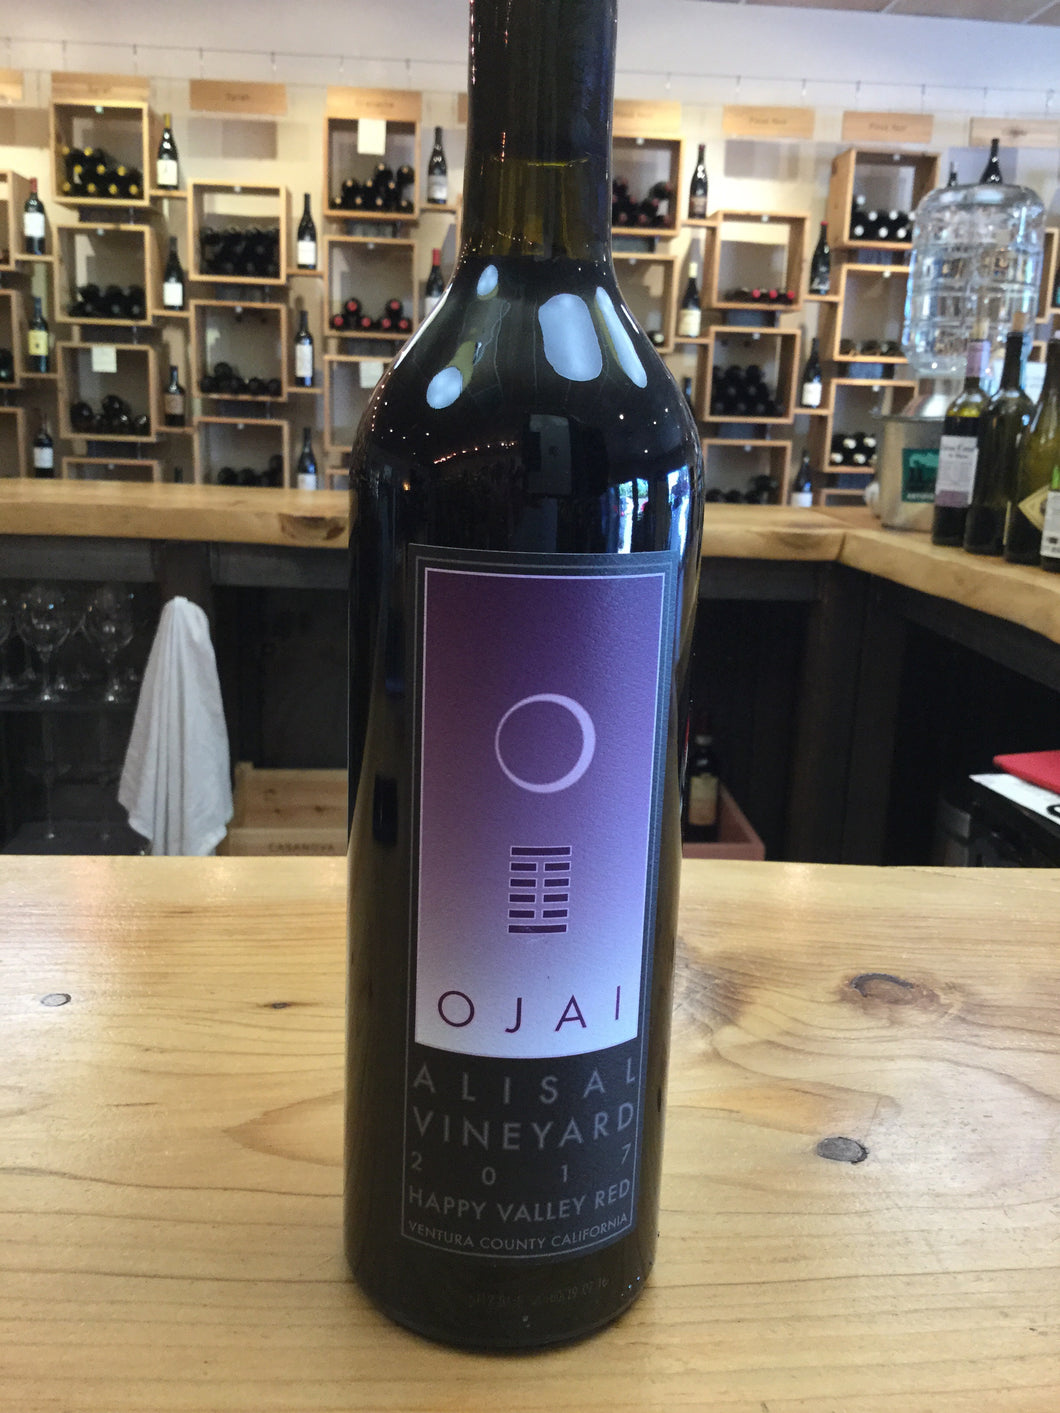 Ojai Alisal '17 Happy Valley Red